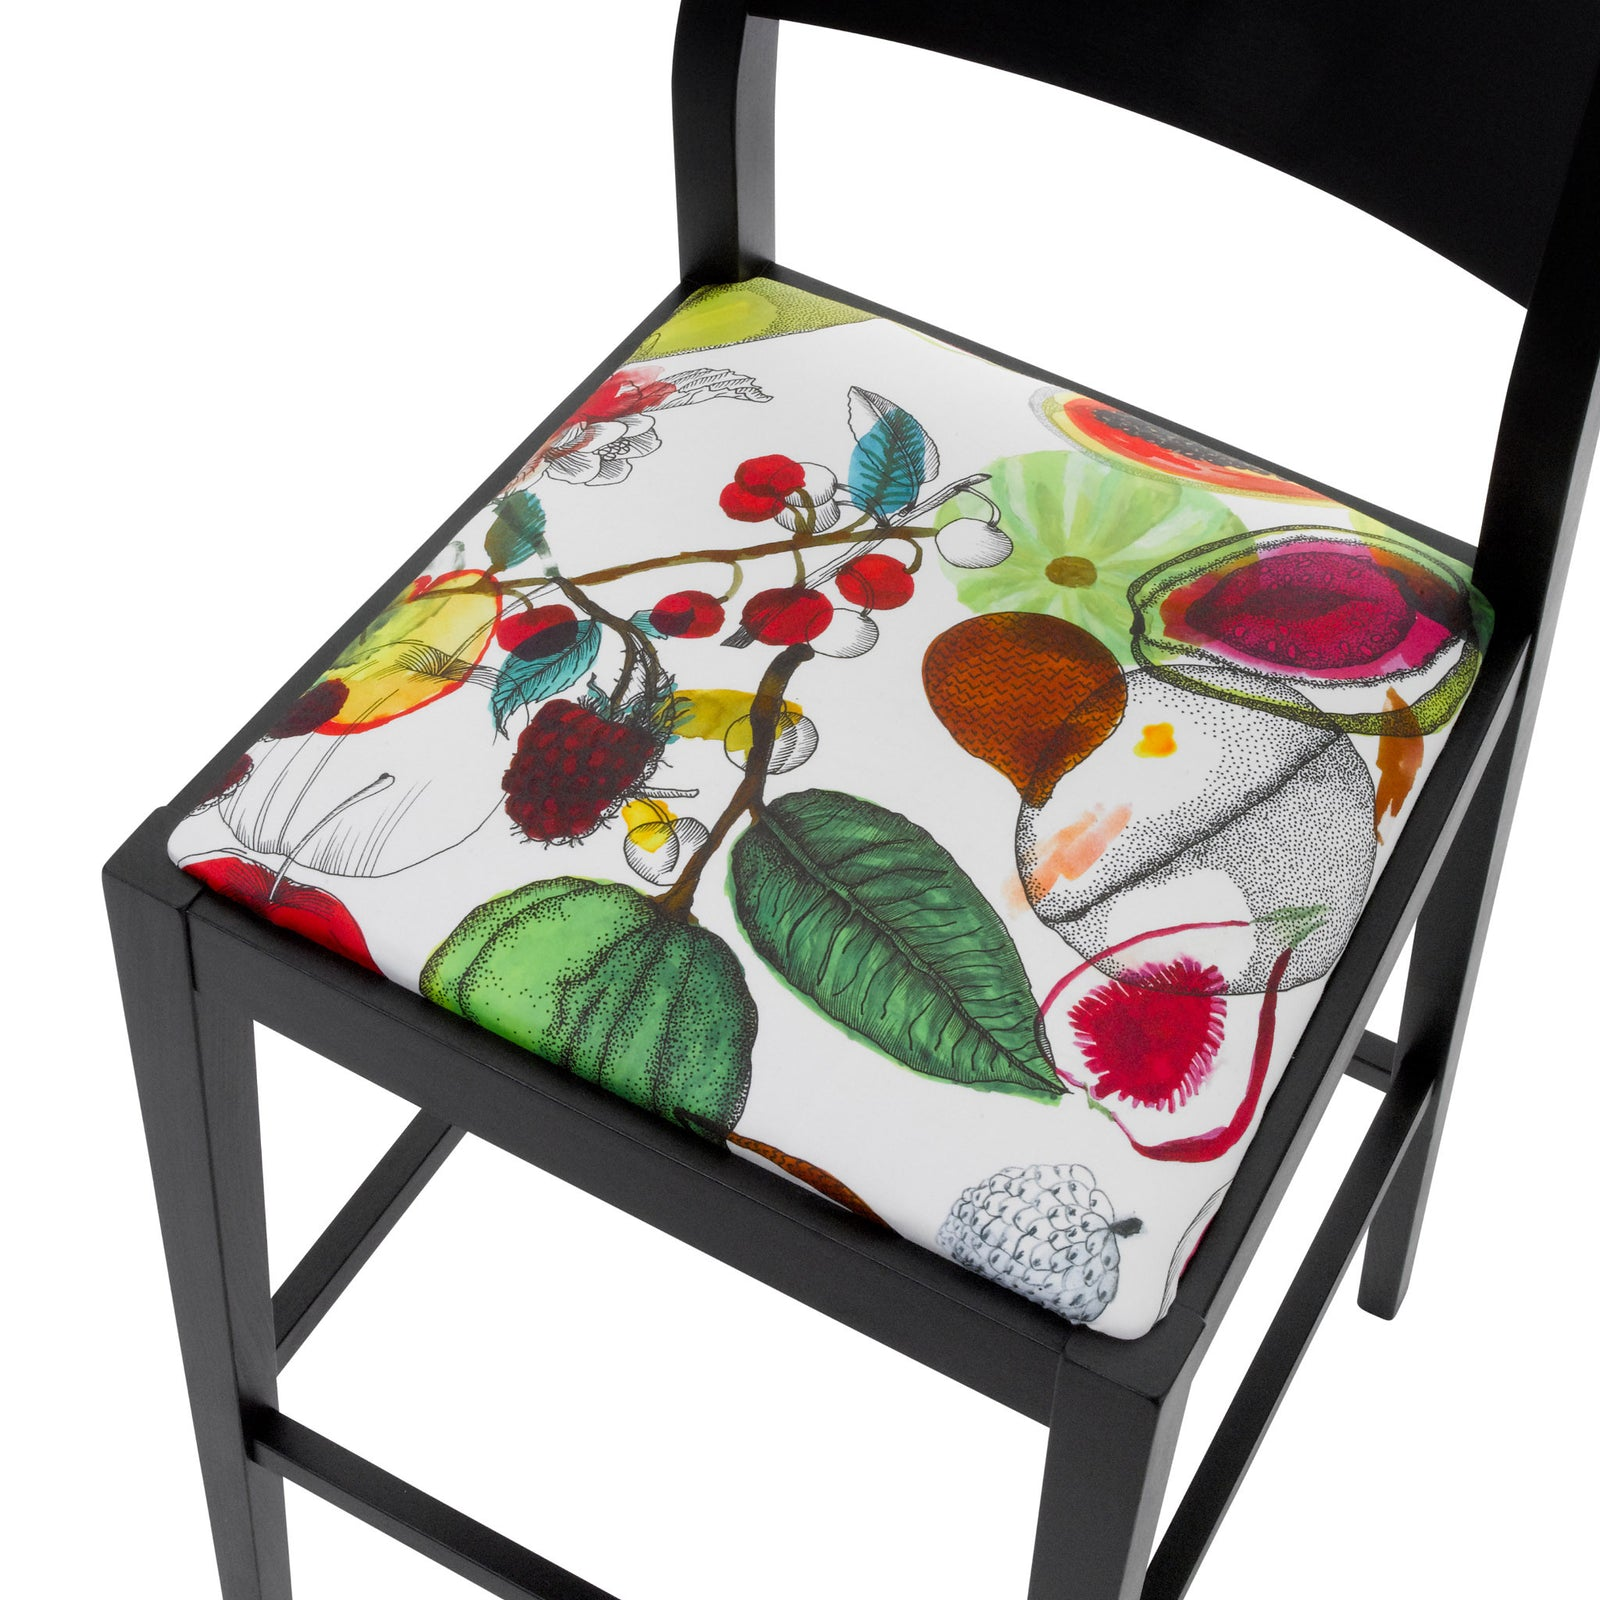 Seat View of the James Bar Stool upholstered with Christian Lacroix fabric, finished in black.